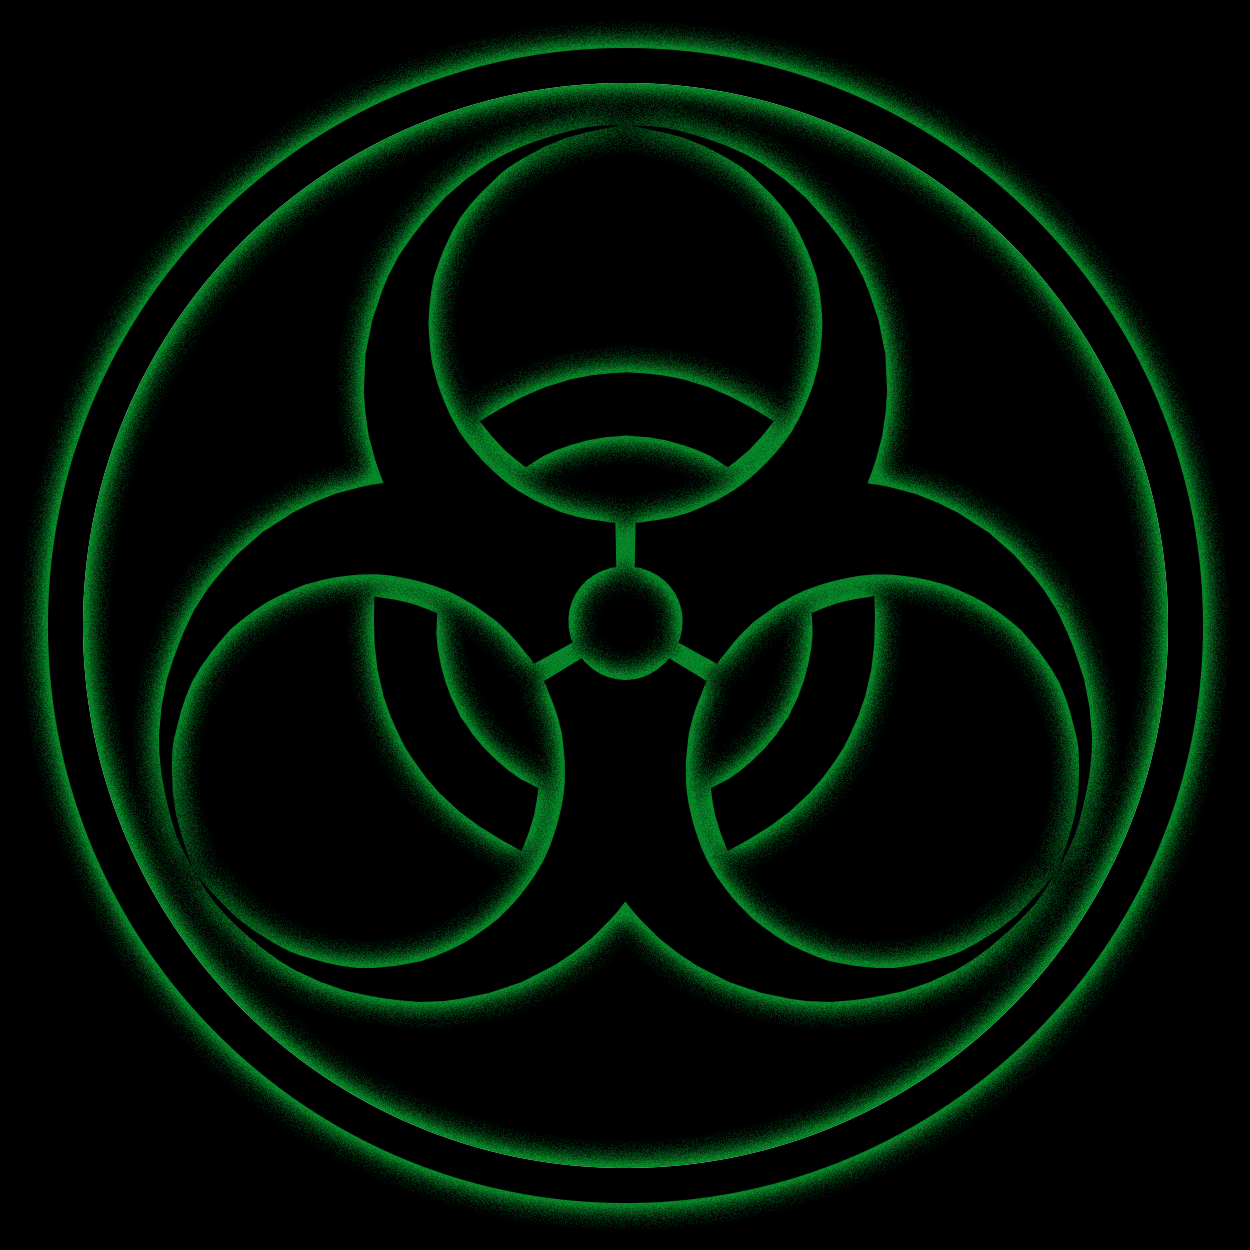 Image biohazard symbol png2a circle addedg fallout wiki biohazard symbol png2a circle addedg biocorpaavc Image collections